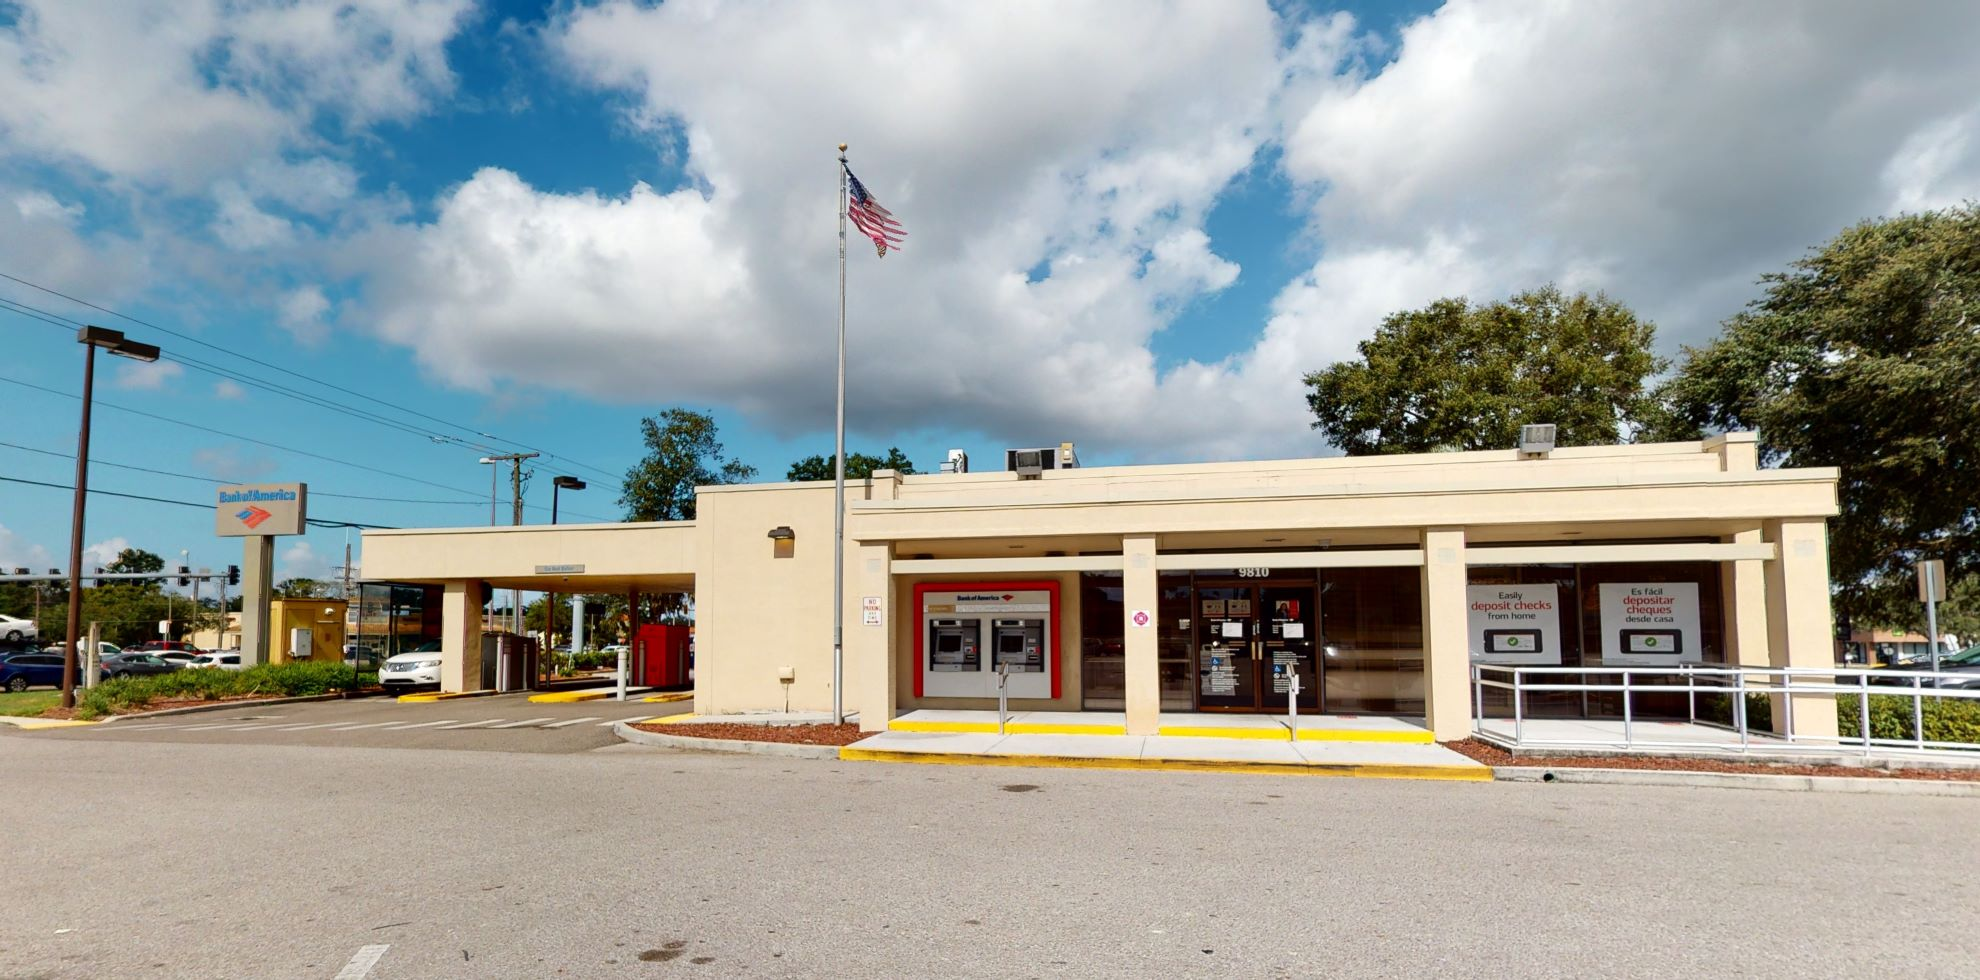 Bank of America financial center with drive-thru ATM   9810 US Highway 301 S, Riverview, FL 33578